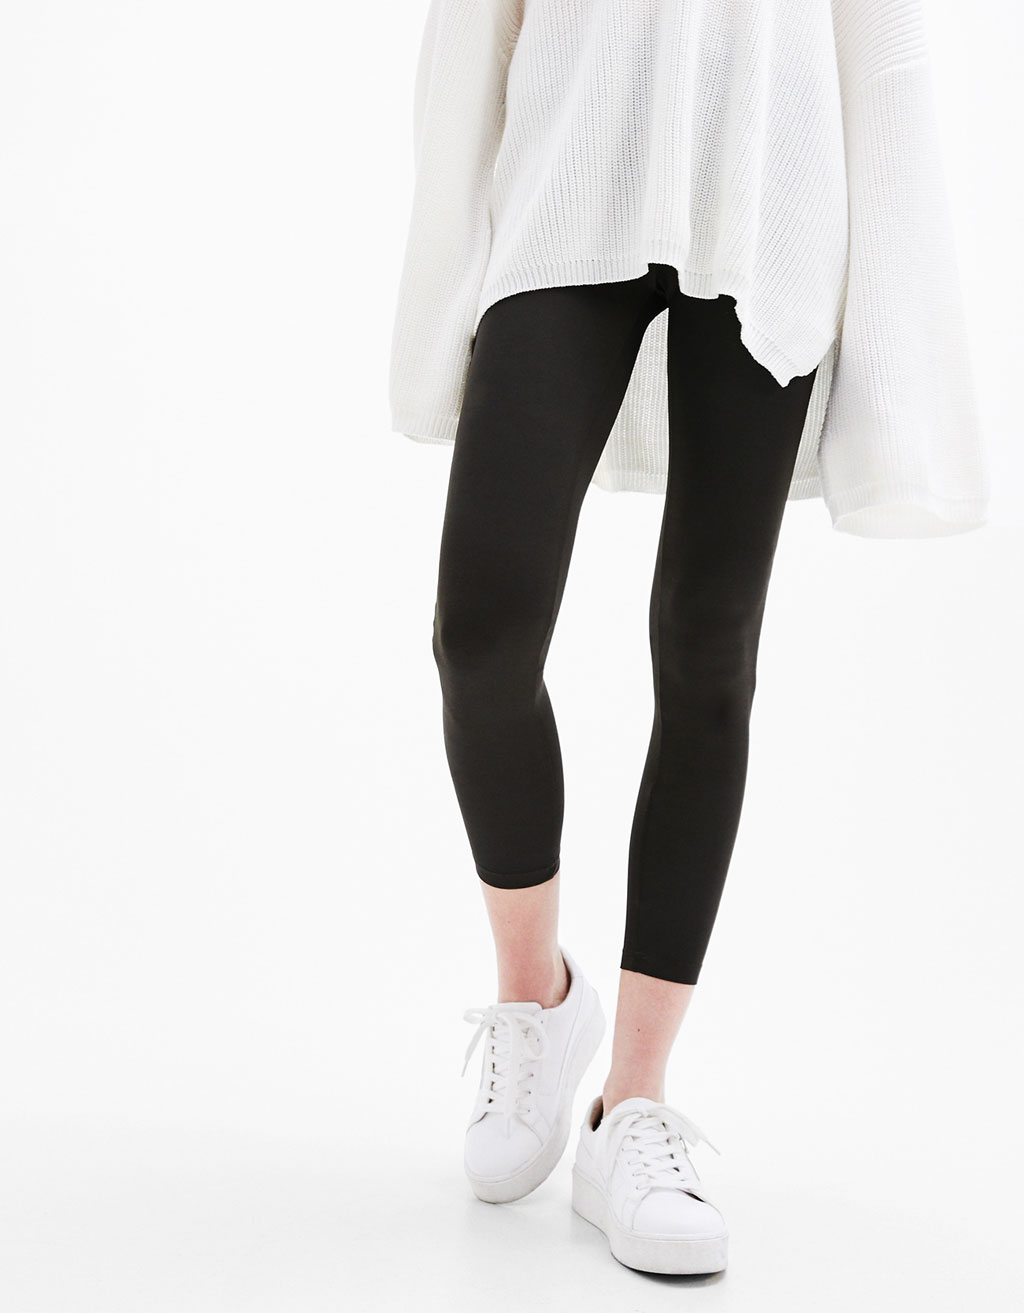 Neoprene leggings with a stretch waist